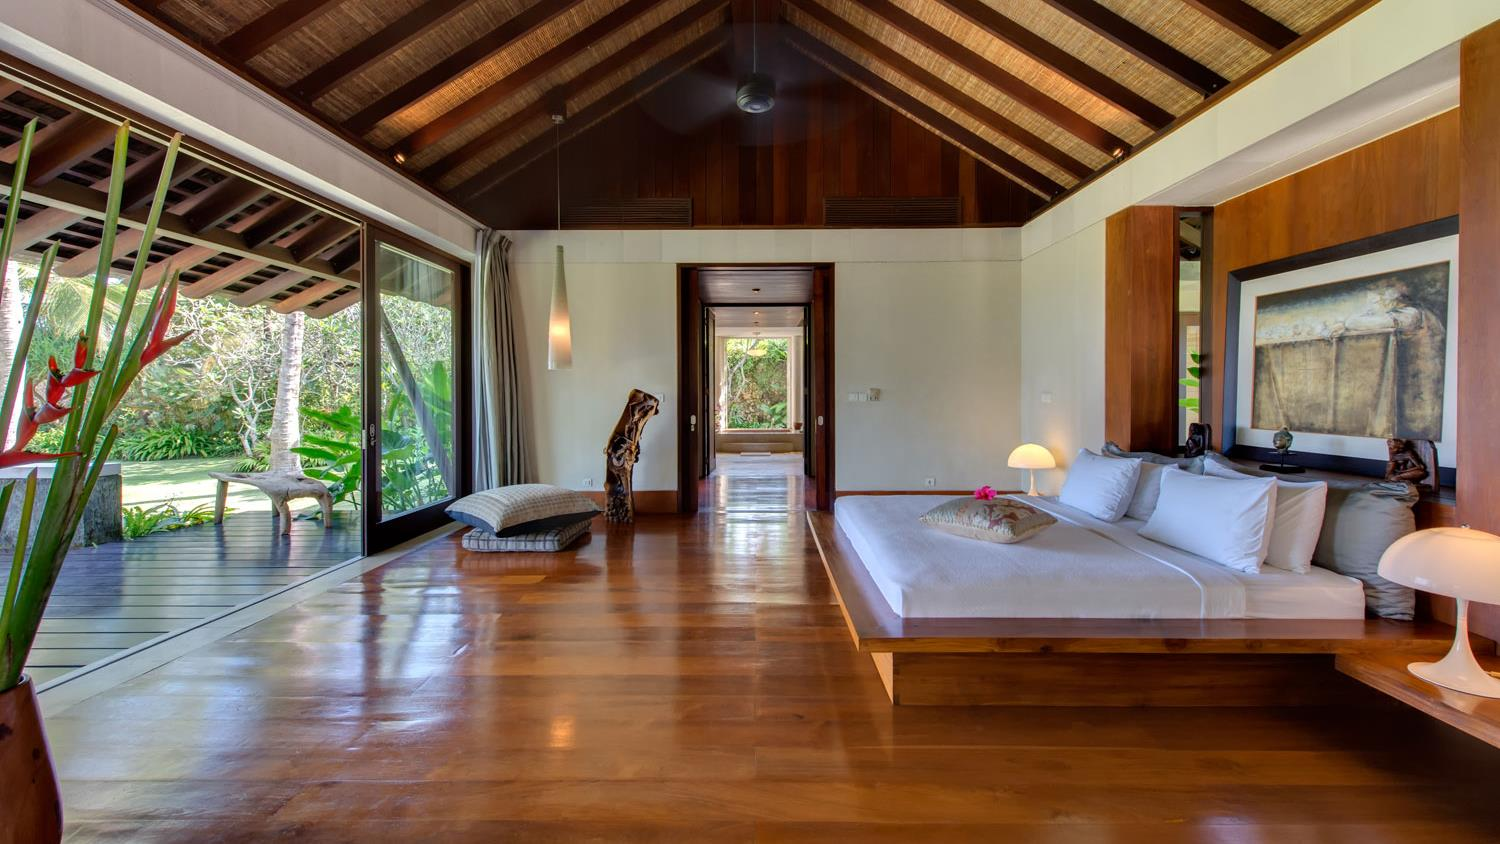 Spacious Bedroom with Wooden Floor - Villa Samadhana - Sanur, Bali